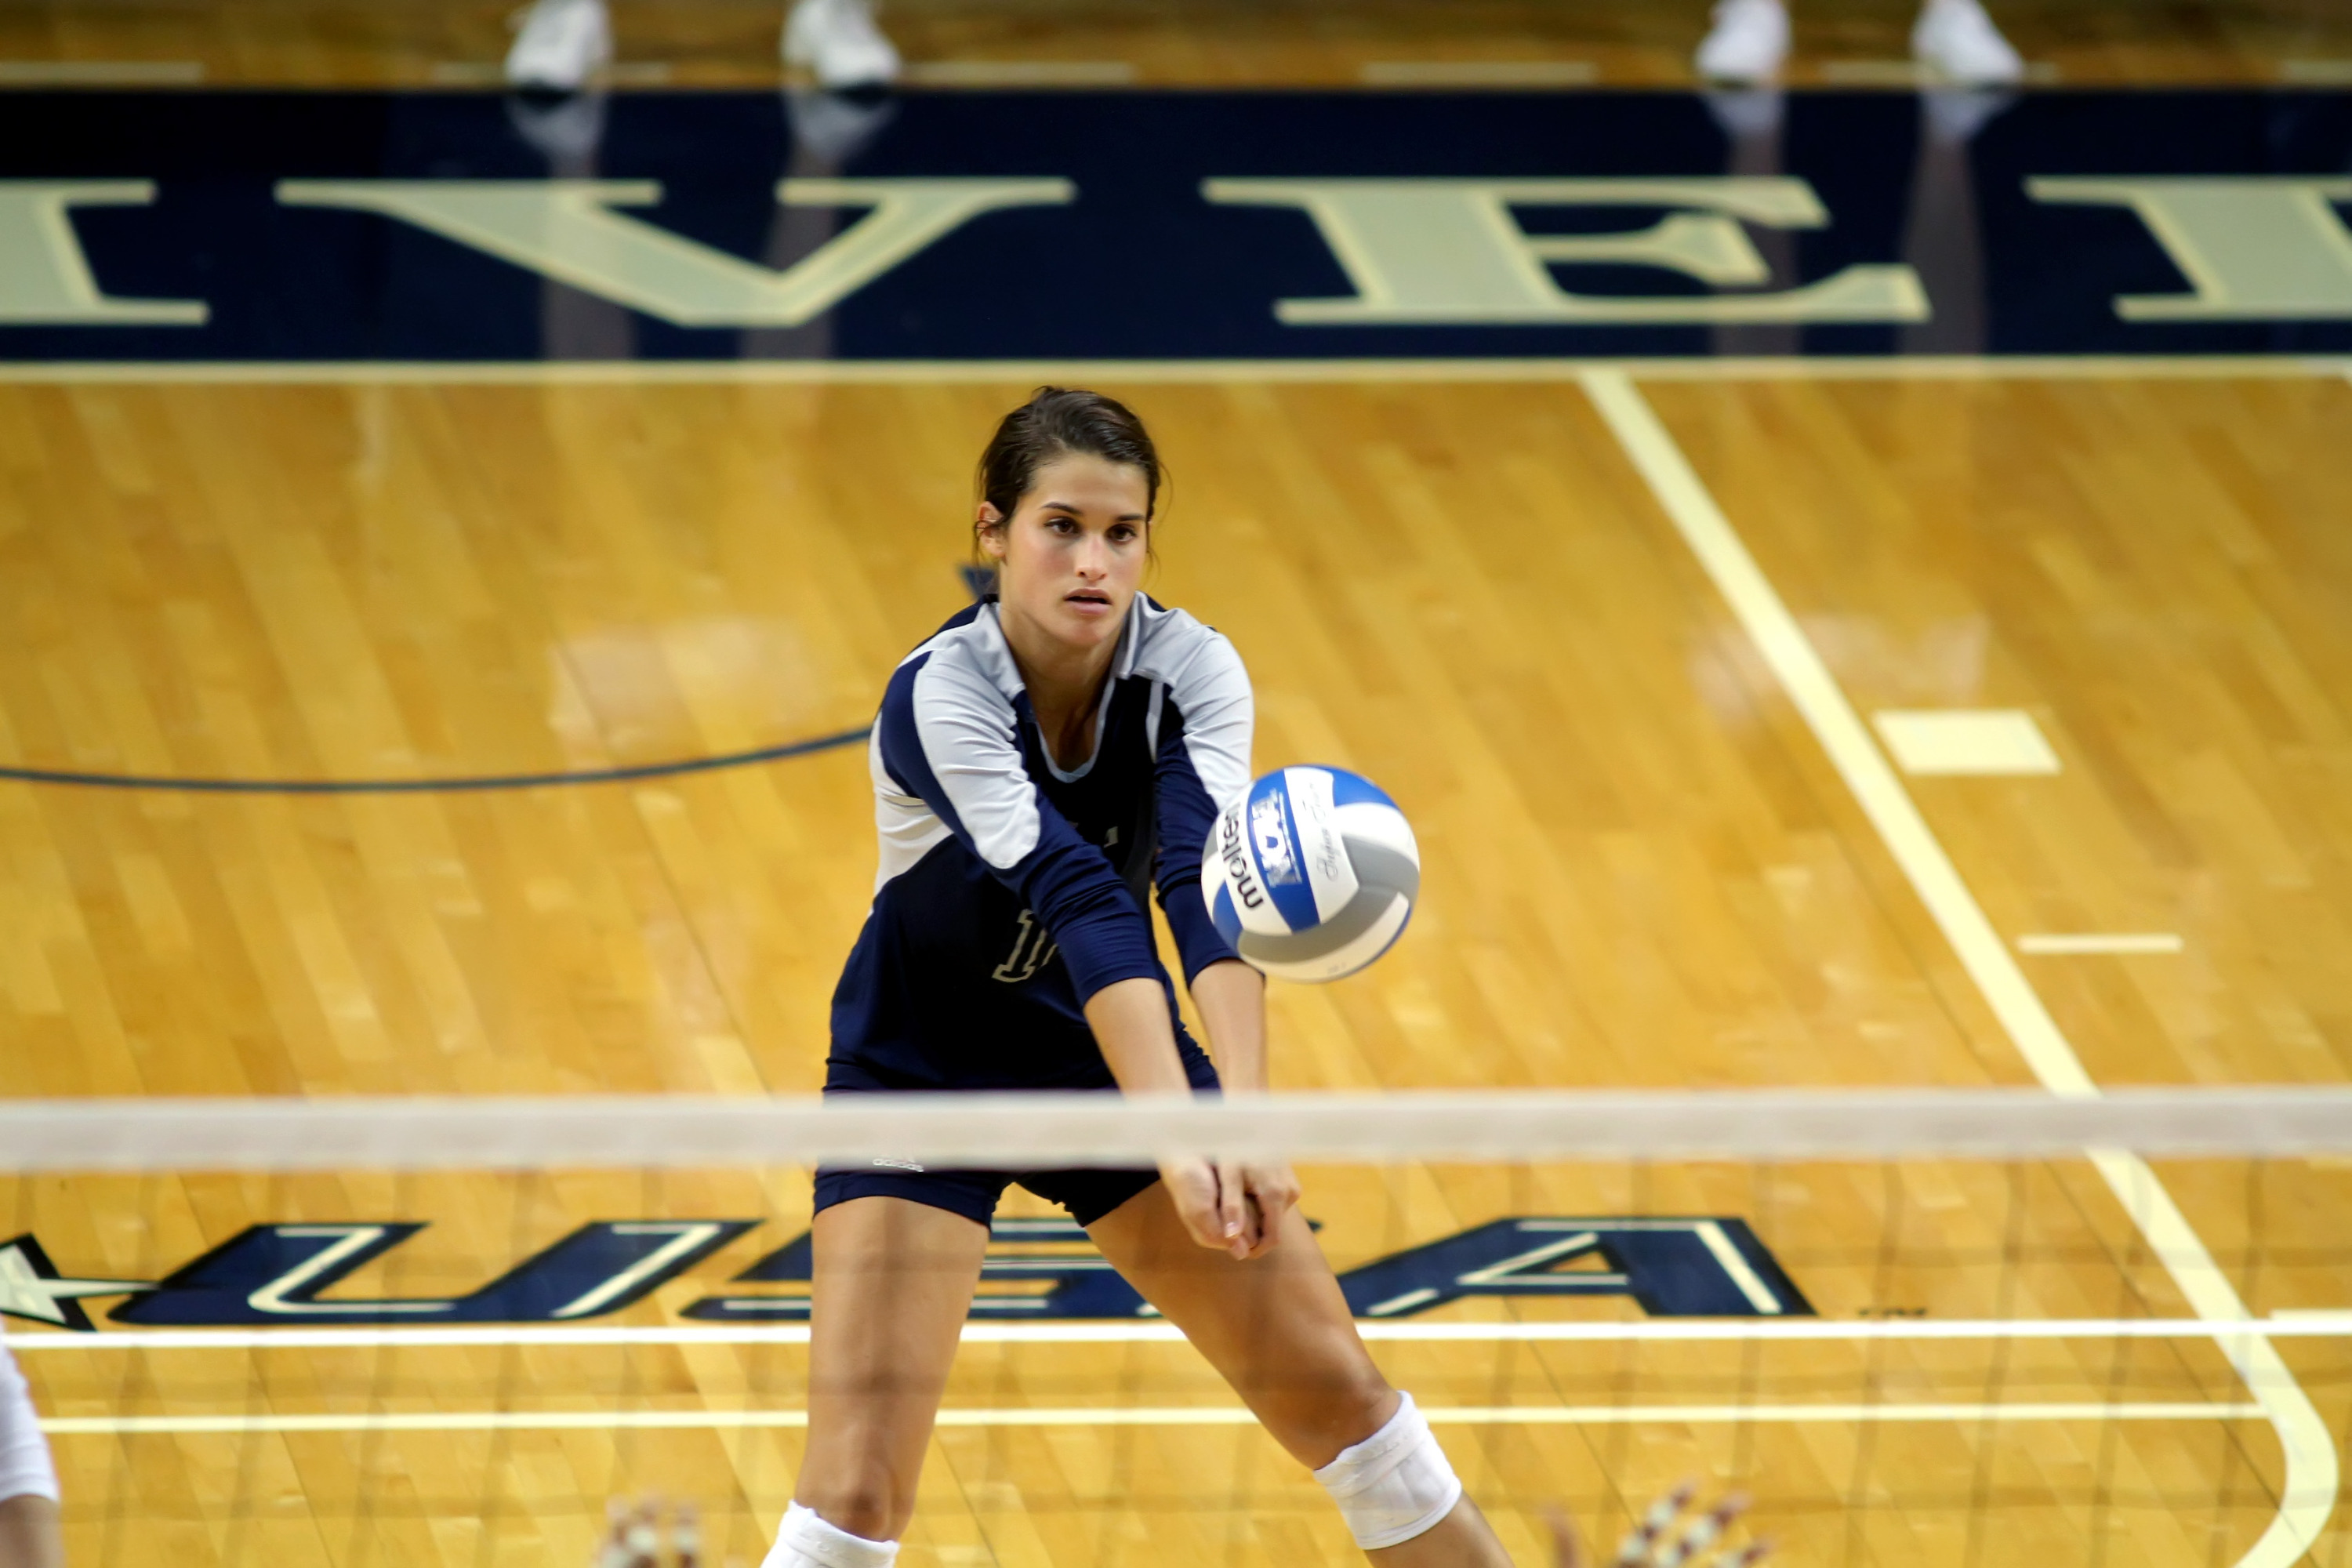 Daniela Arenas' 35 digs were fourth-most in a single match in school history